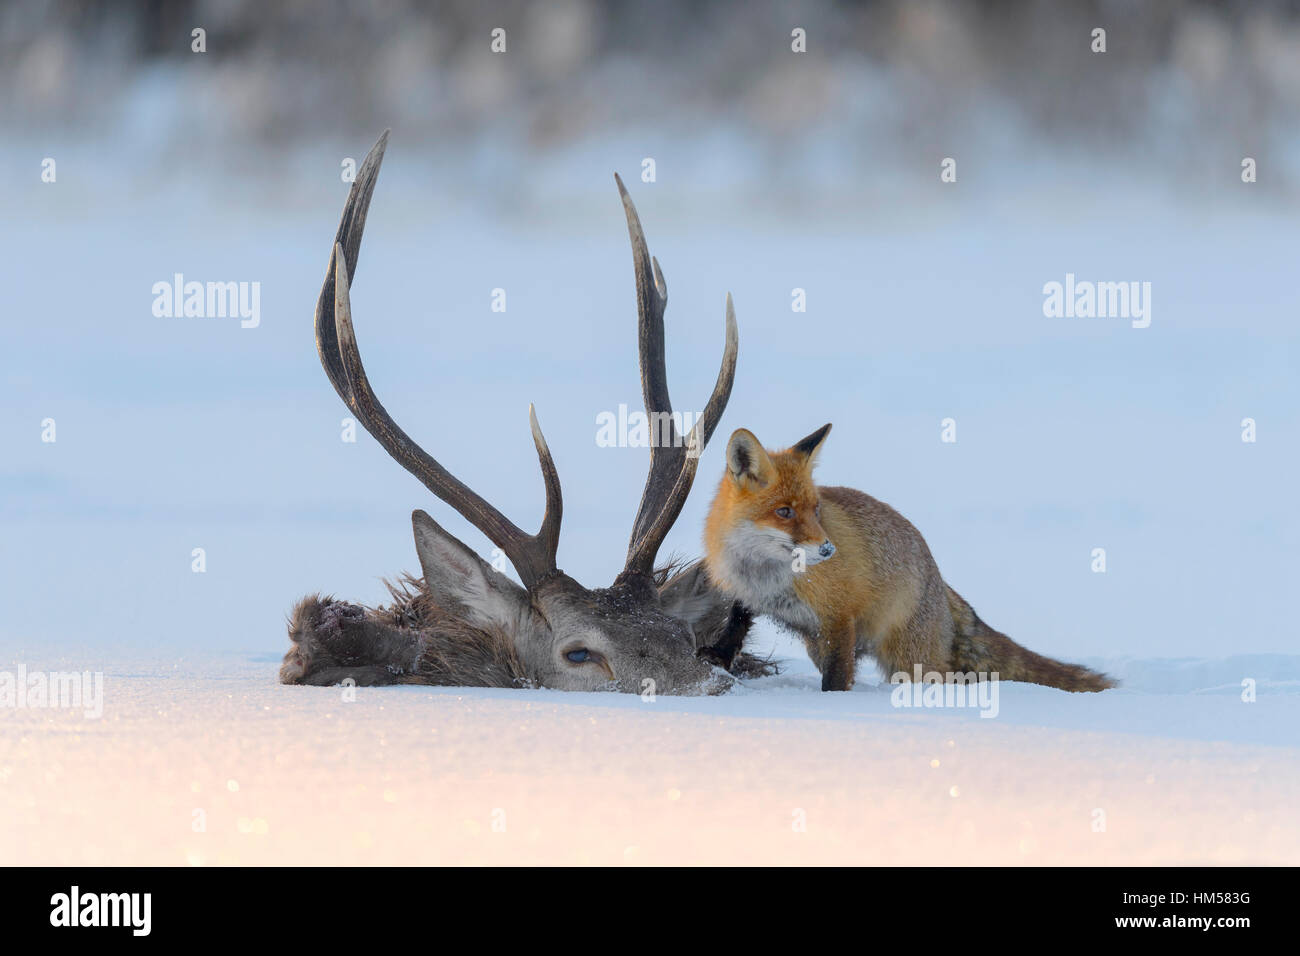 Red fox (Vulpes vulpes), by the carcass of a red deer that fell into the ice, frozen lake, Bohemian Forest, Czech - Stock Image